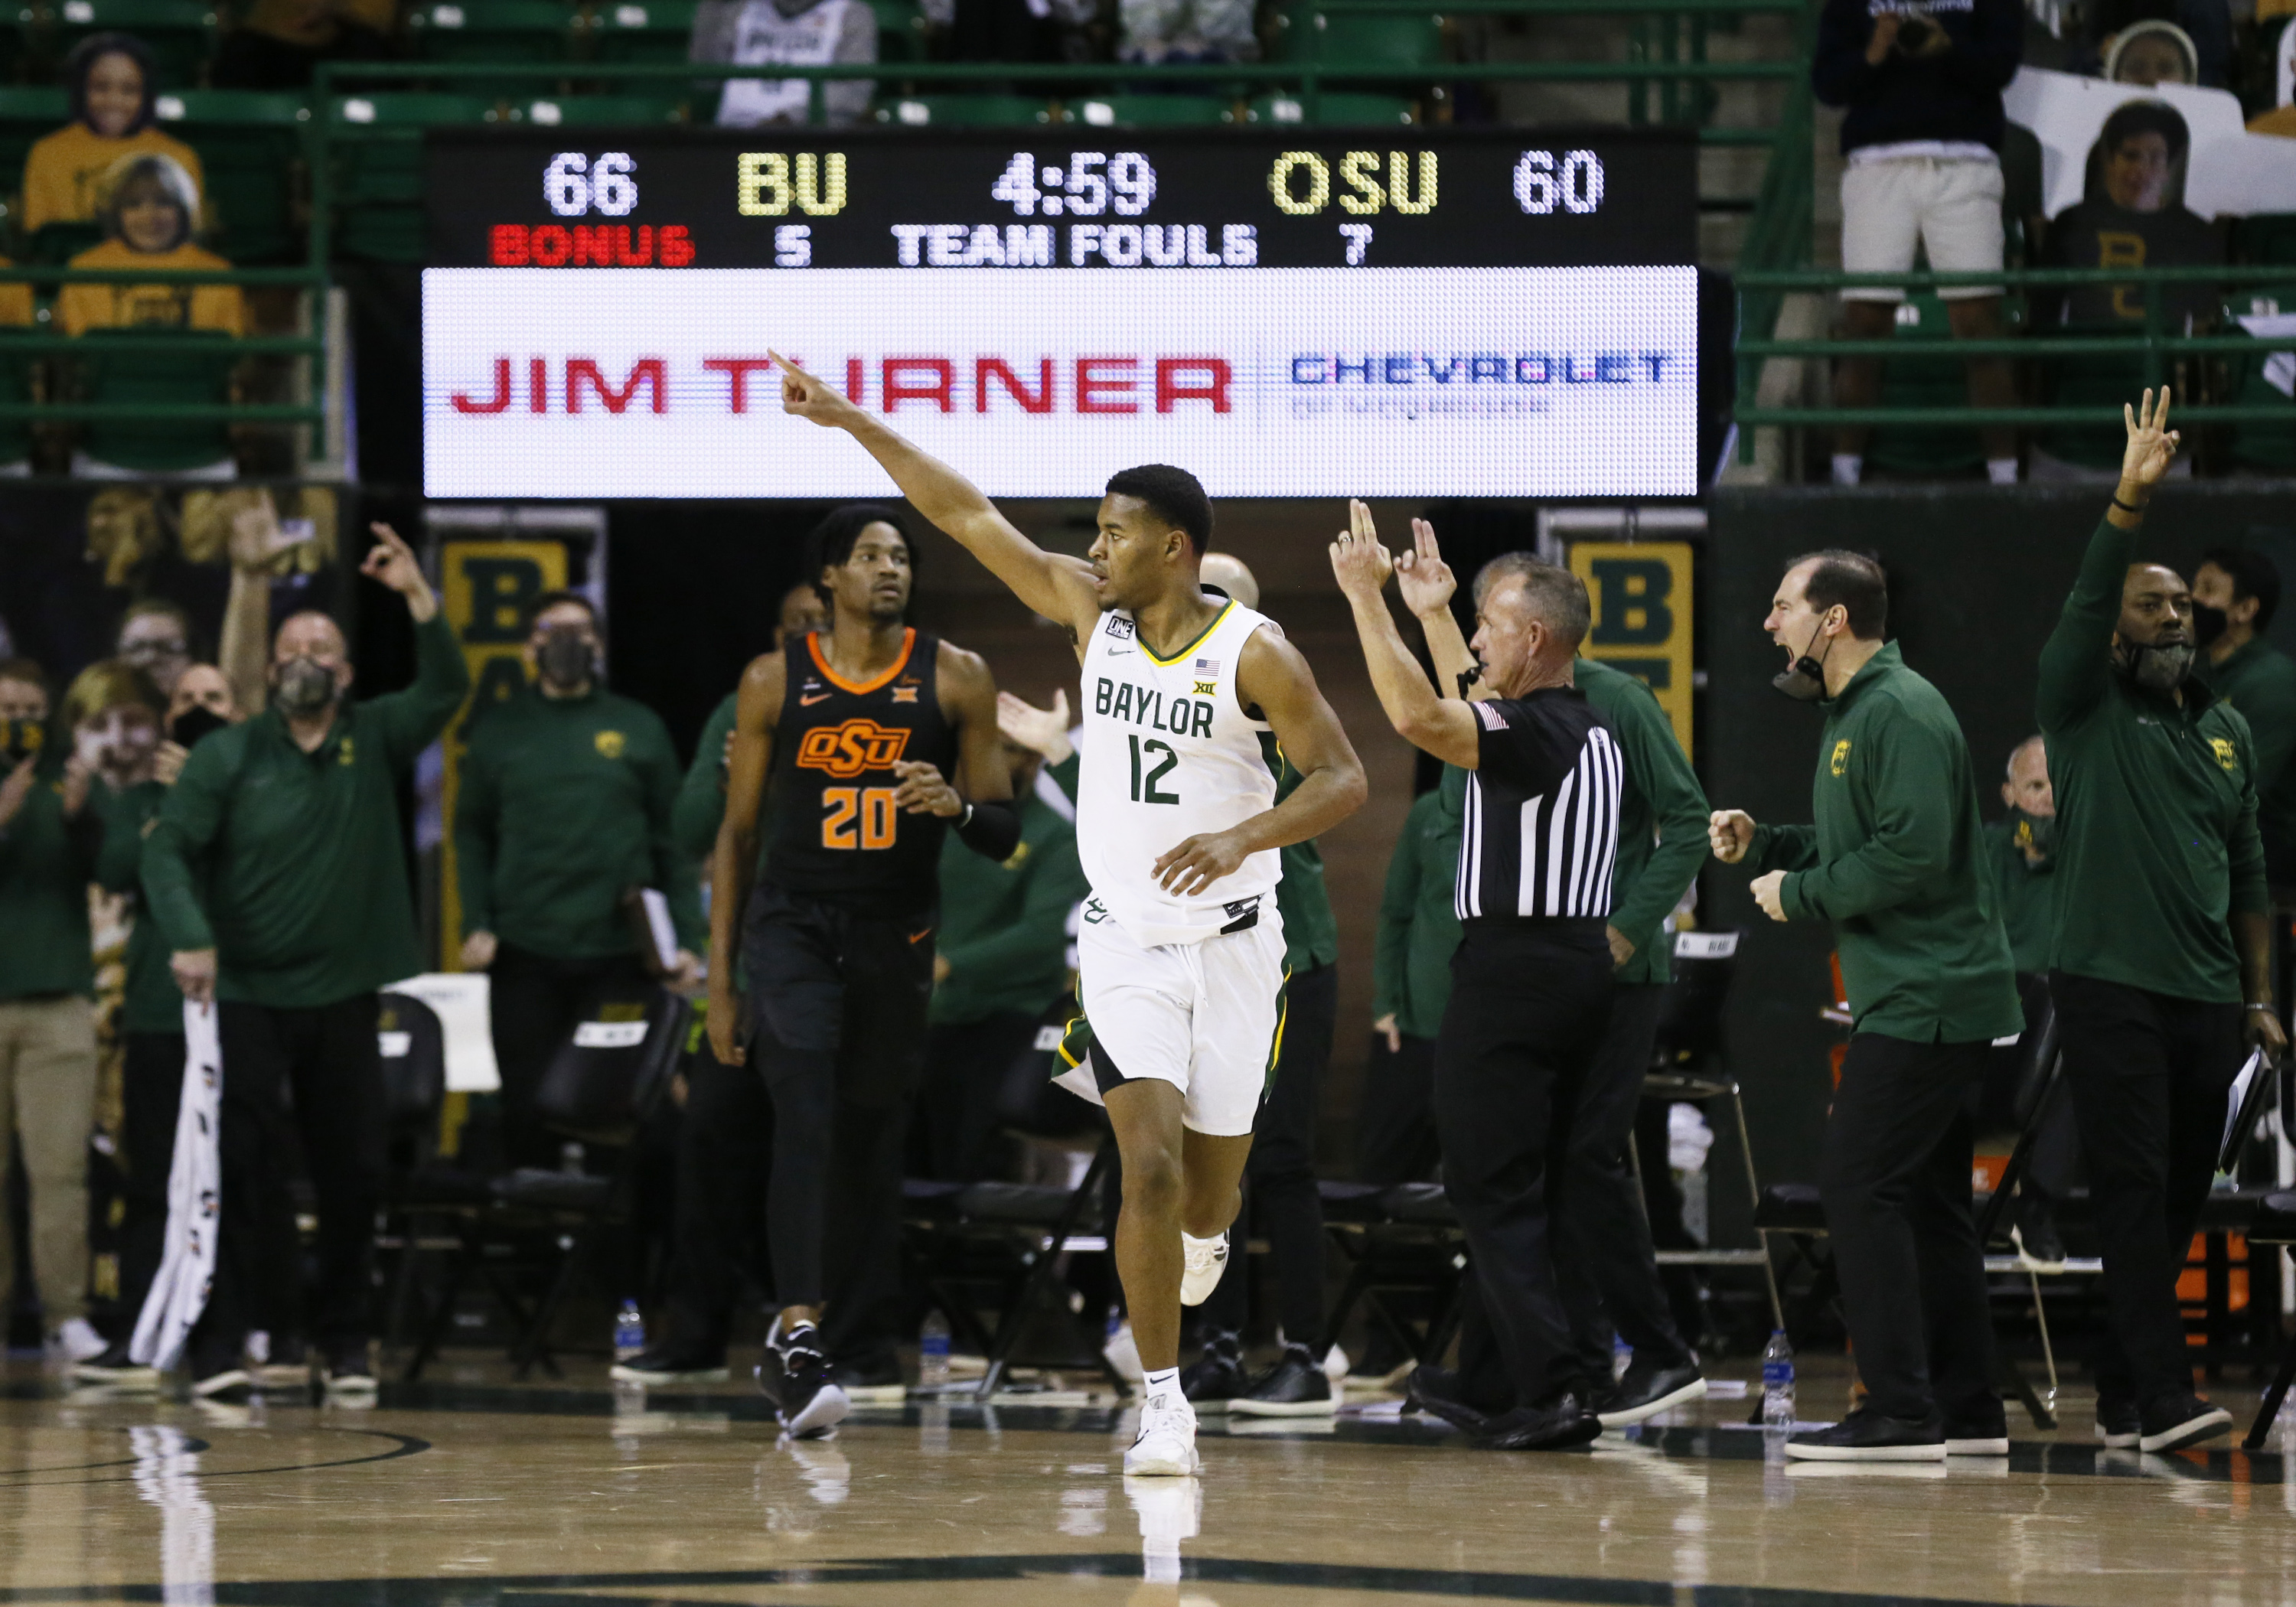 Baylor Bears guard Jared Butler (12) reacts after a made three-point basket against the Oklahoma State Cowboys during the second half at Ferrell Center.